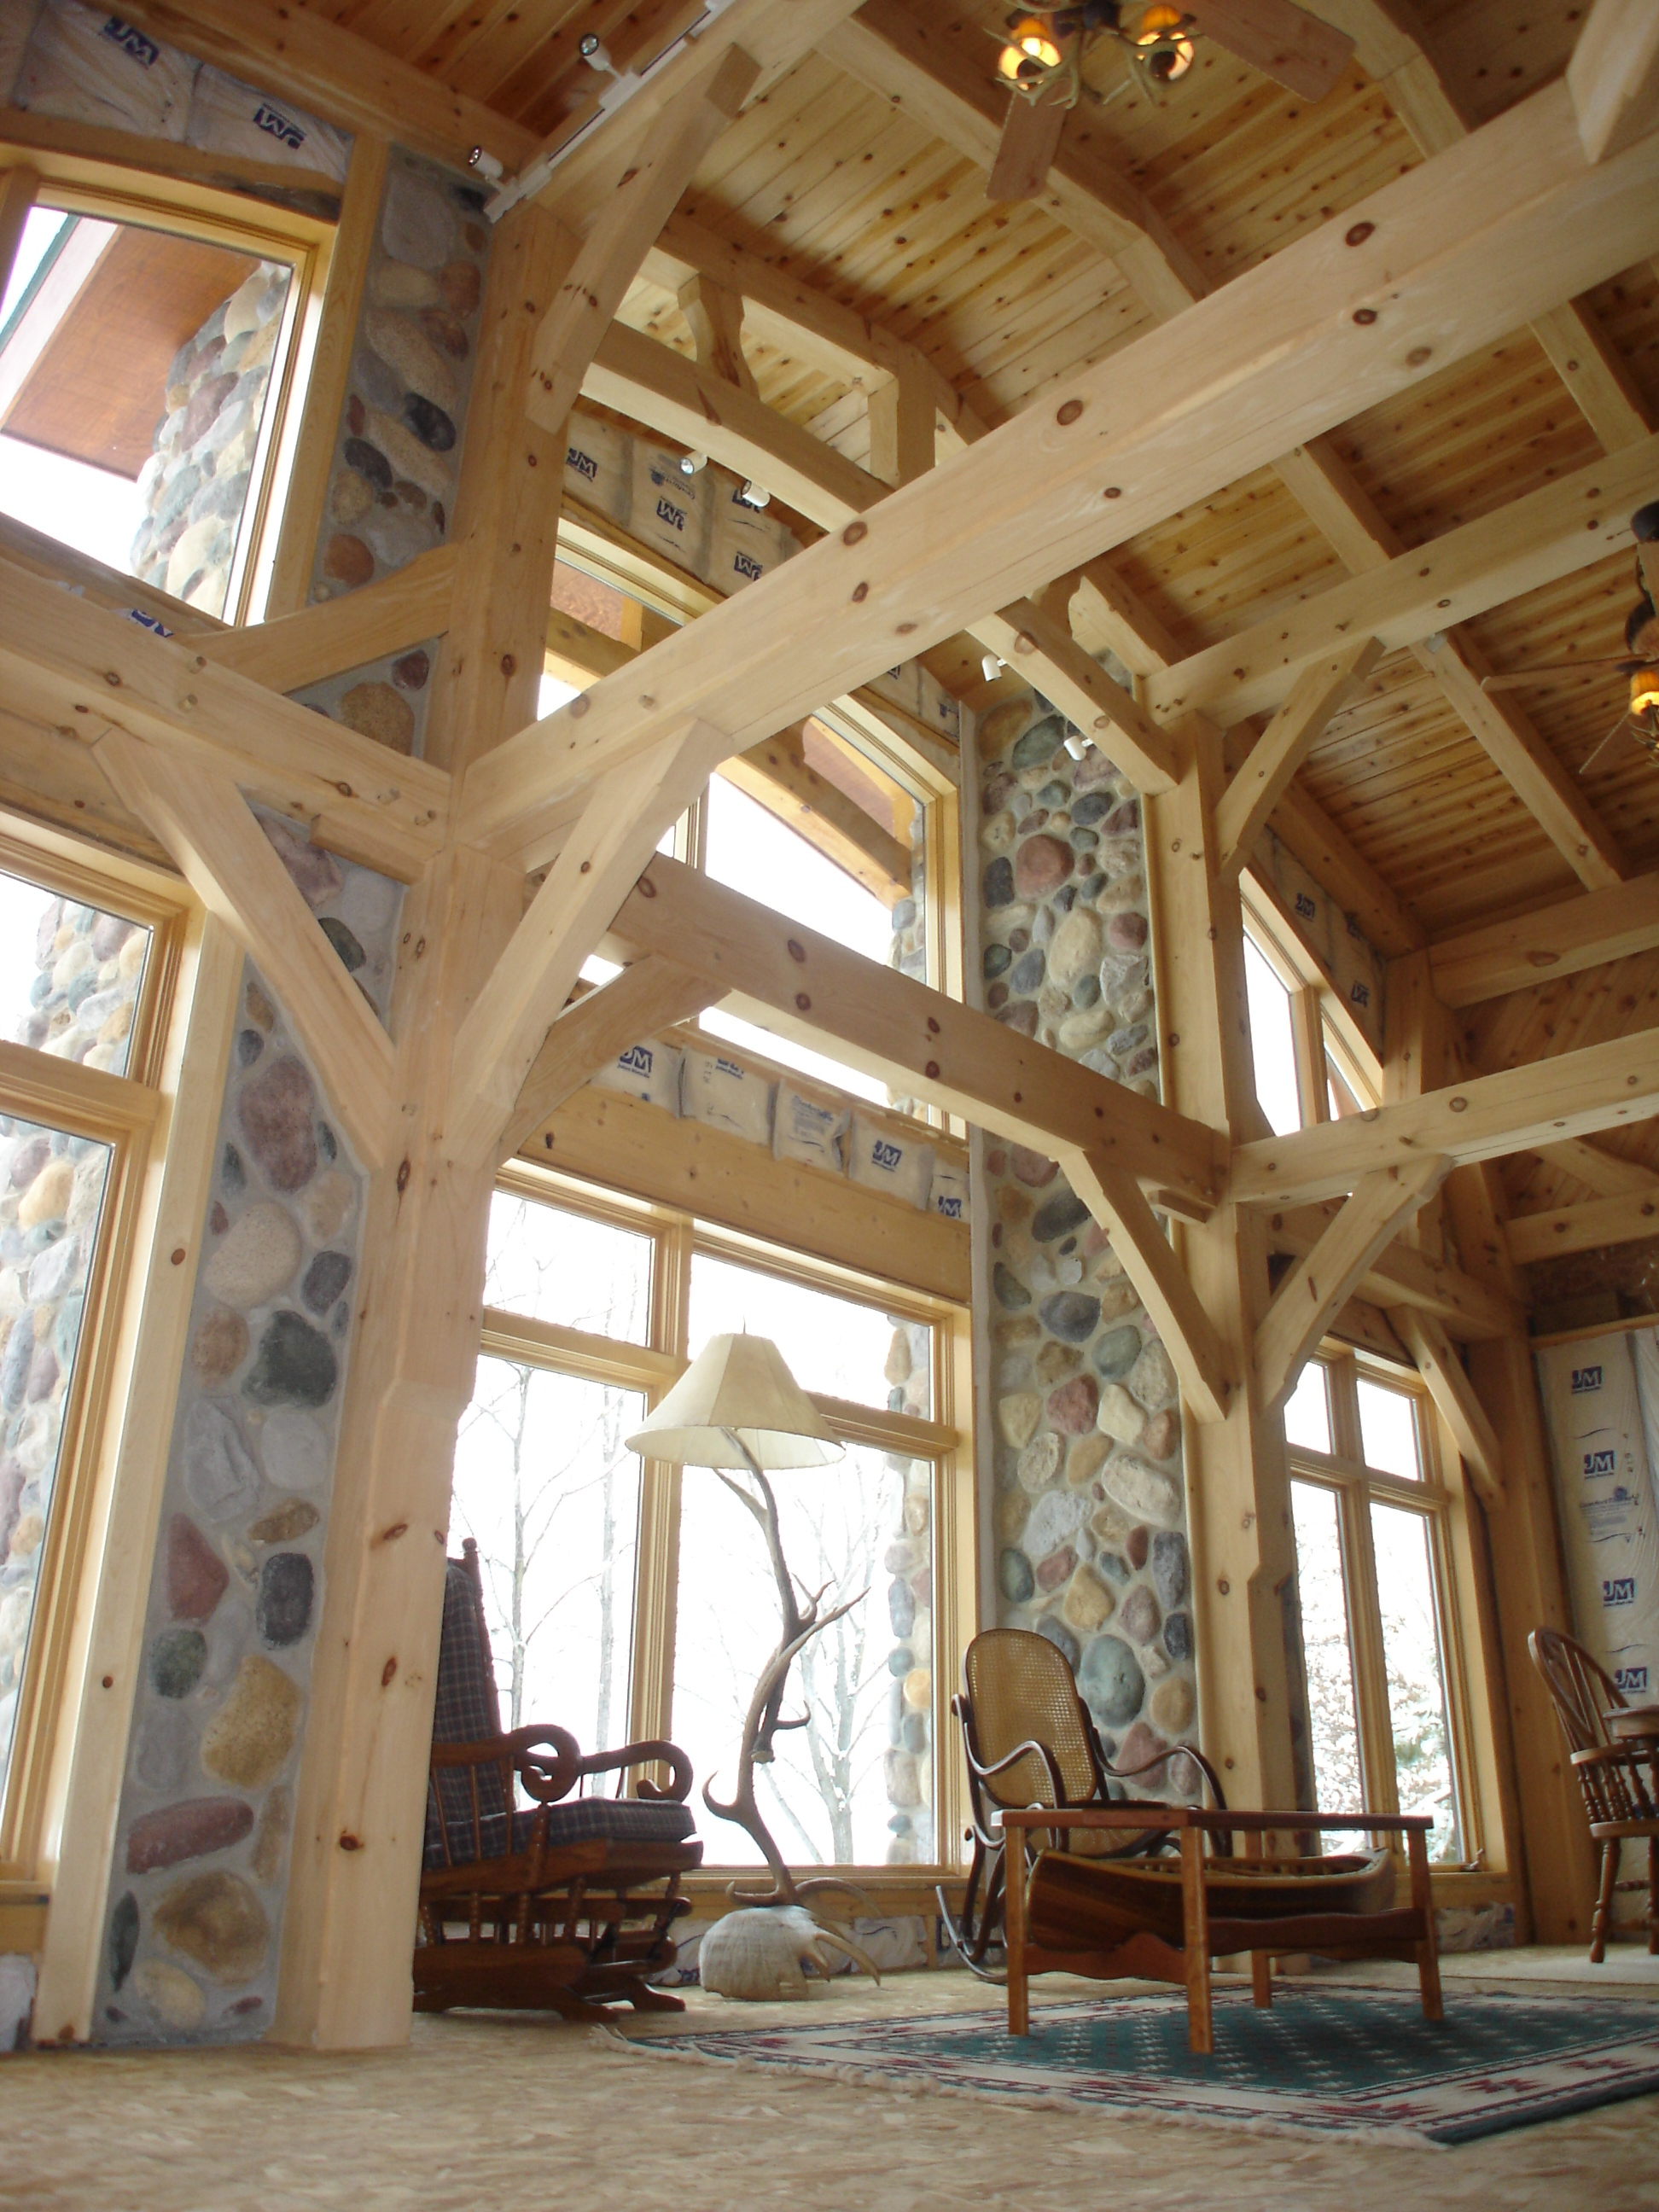 North Woods Timber Frames Builder of Handcrafted Timber Frame Homes In Wisconsin Opens Beautiful